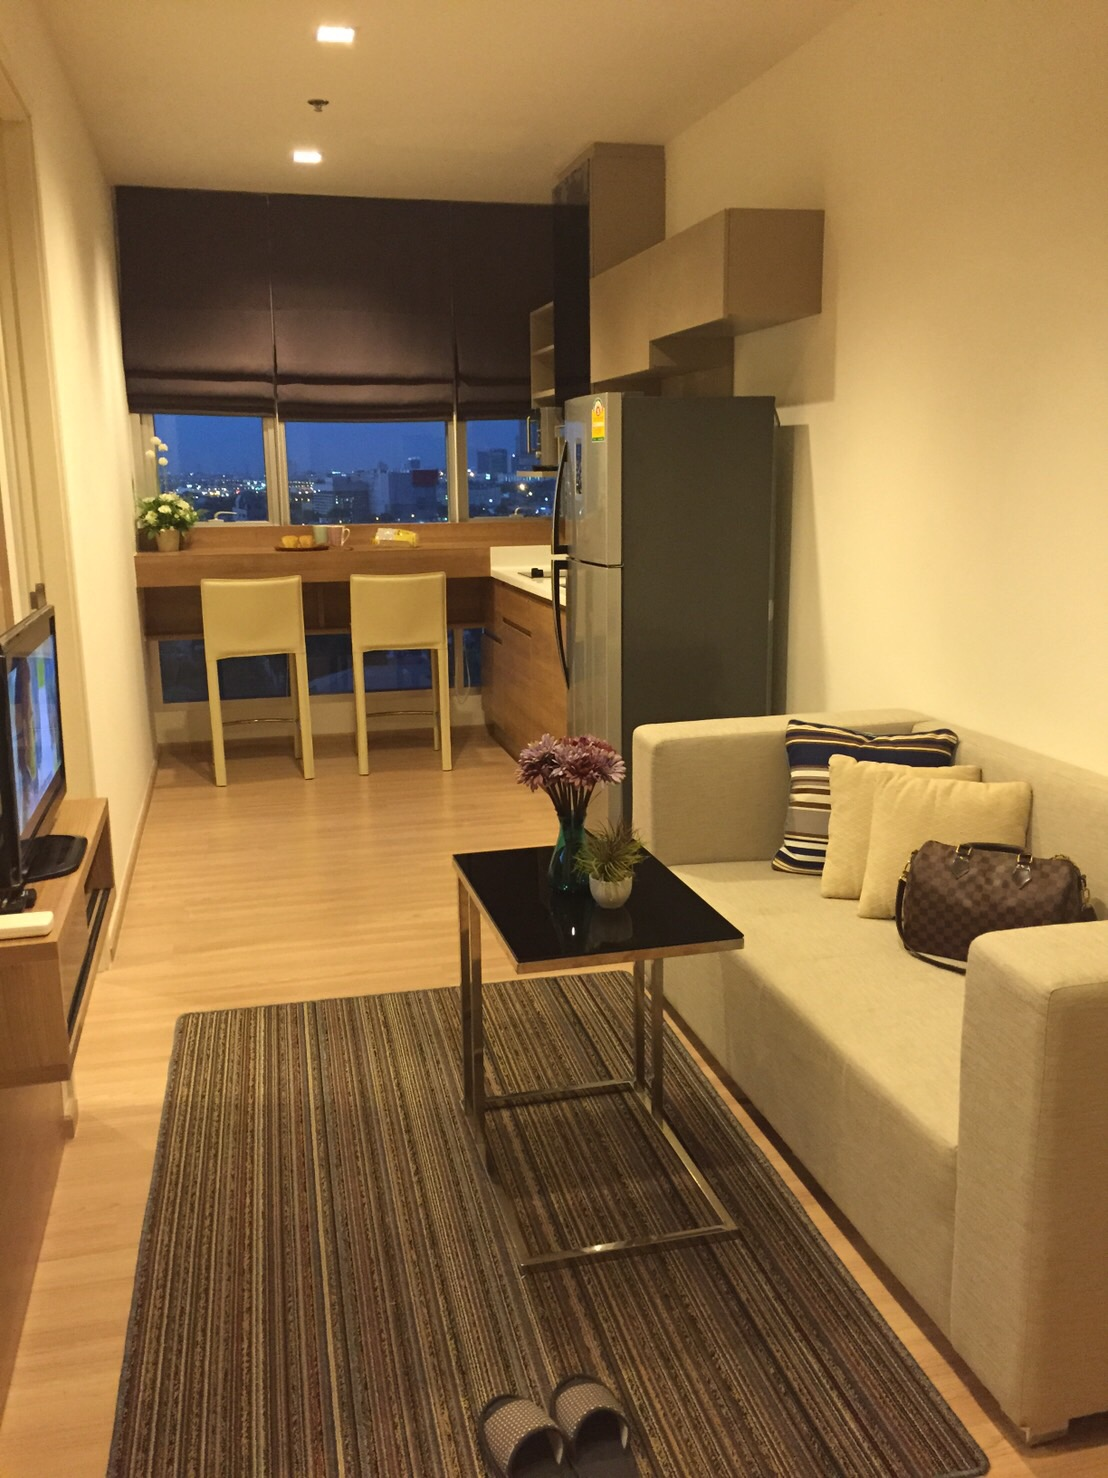 one bedroom condo with sky kitchen in ari promove bangkok brand new one bedroom condo for rent in ari promove bangkok